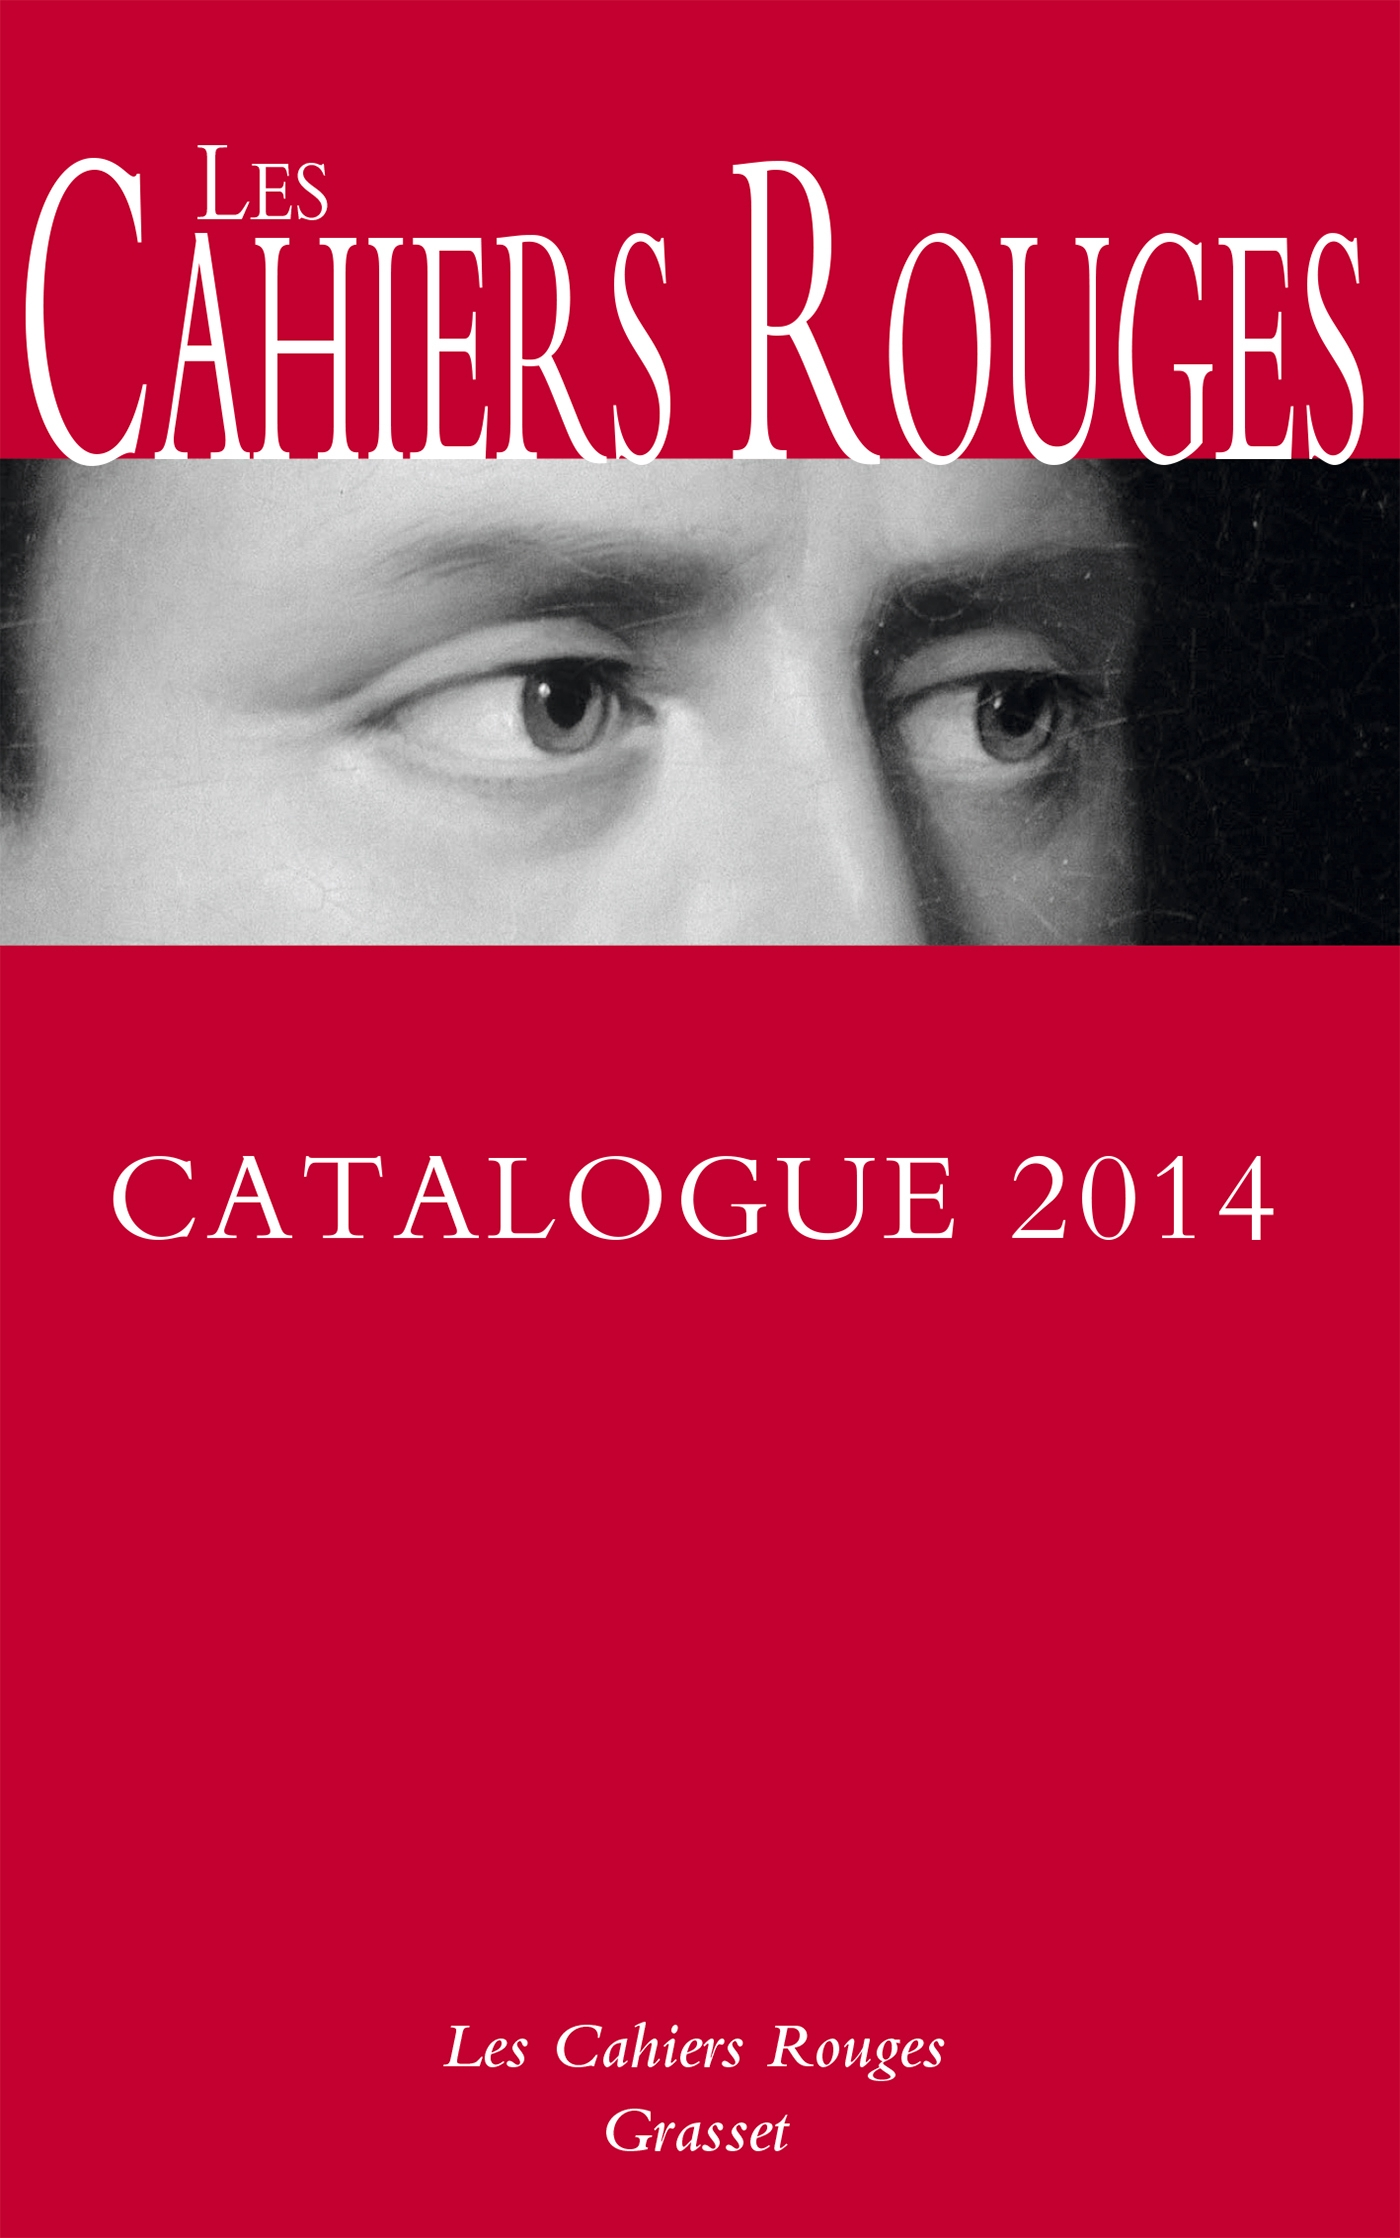 Catalogues cahiers rouges 2014